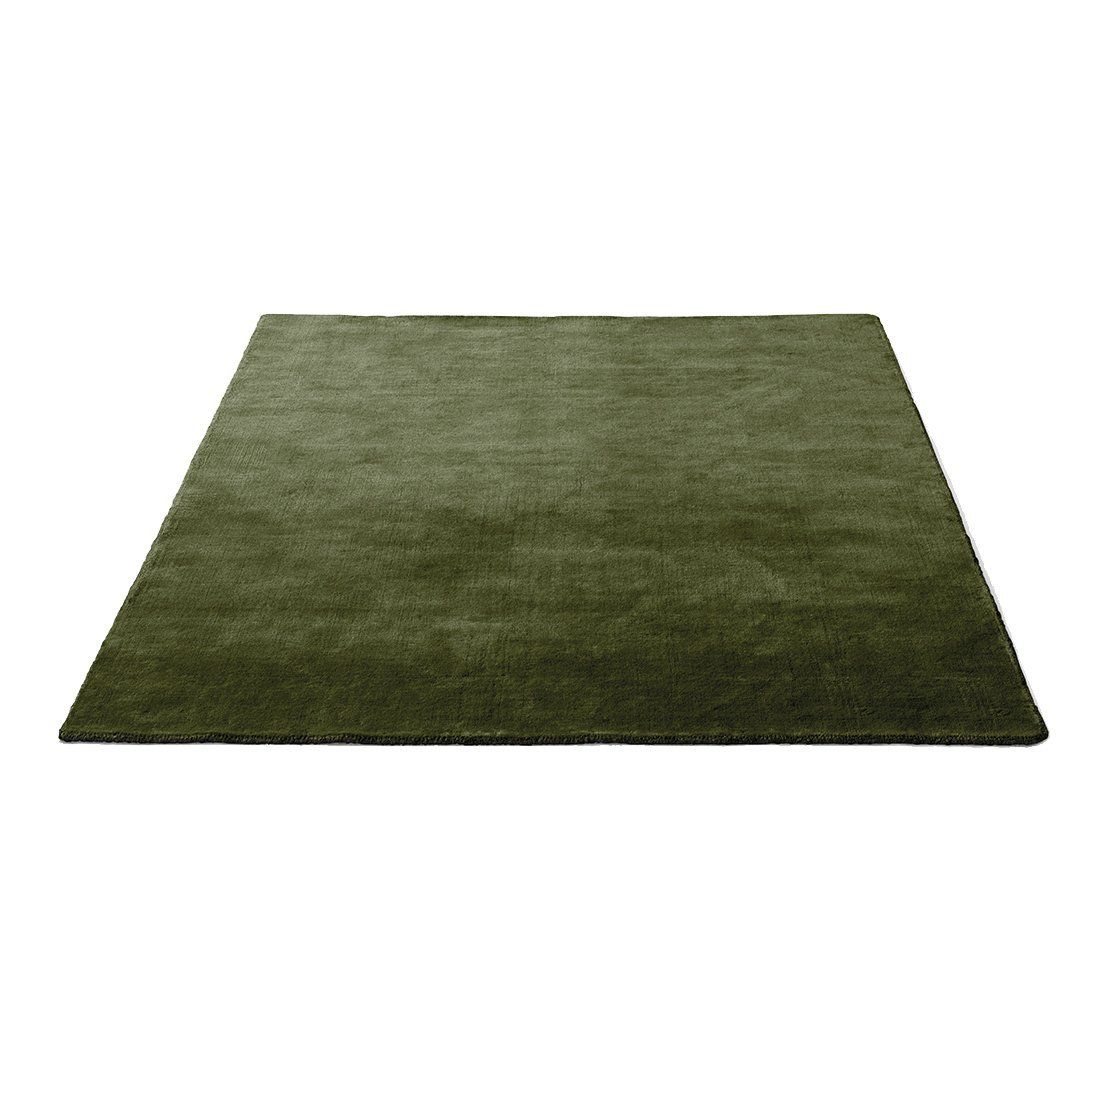 &Tradition The Moor AP5 Vloerkleed - Green Pine